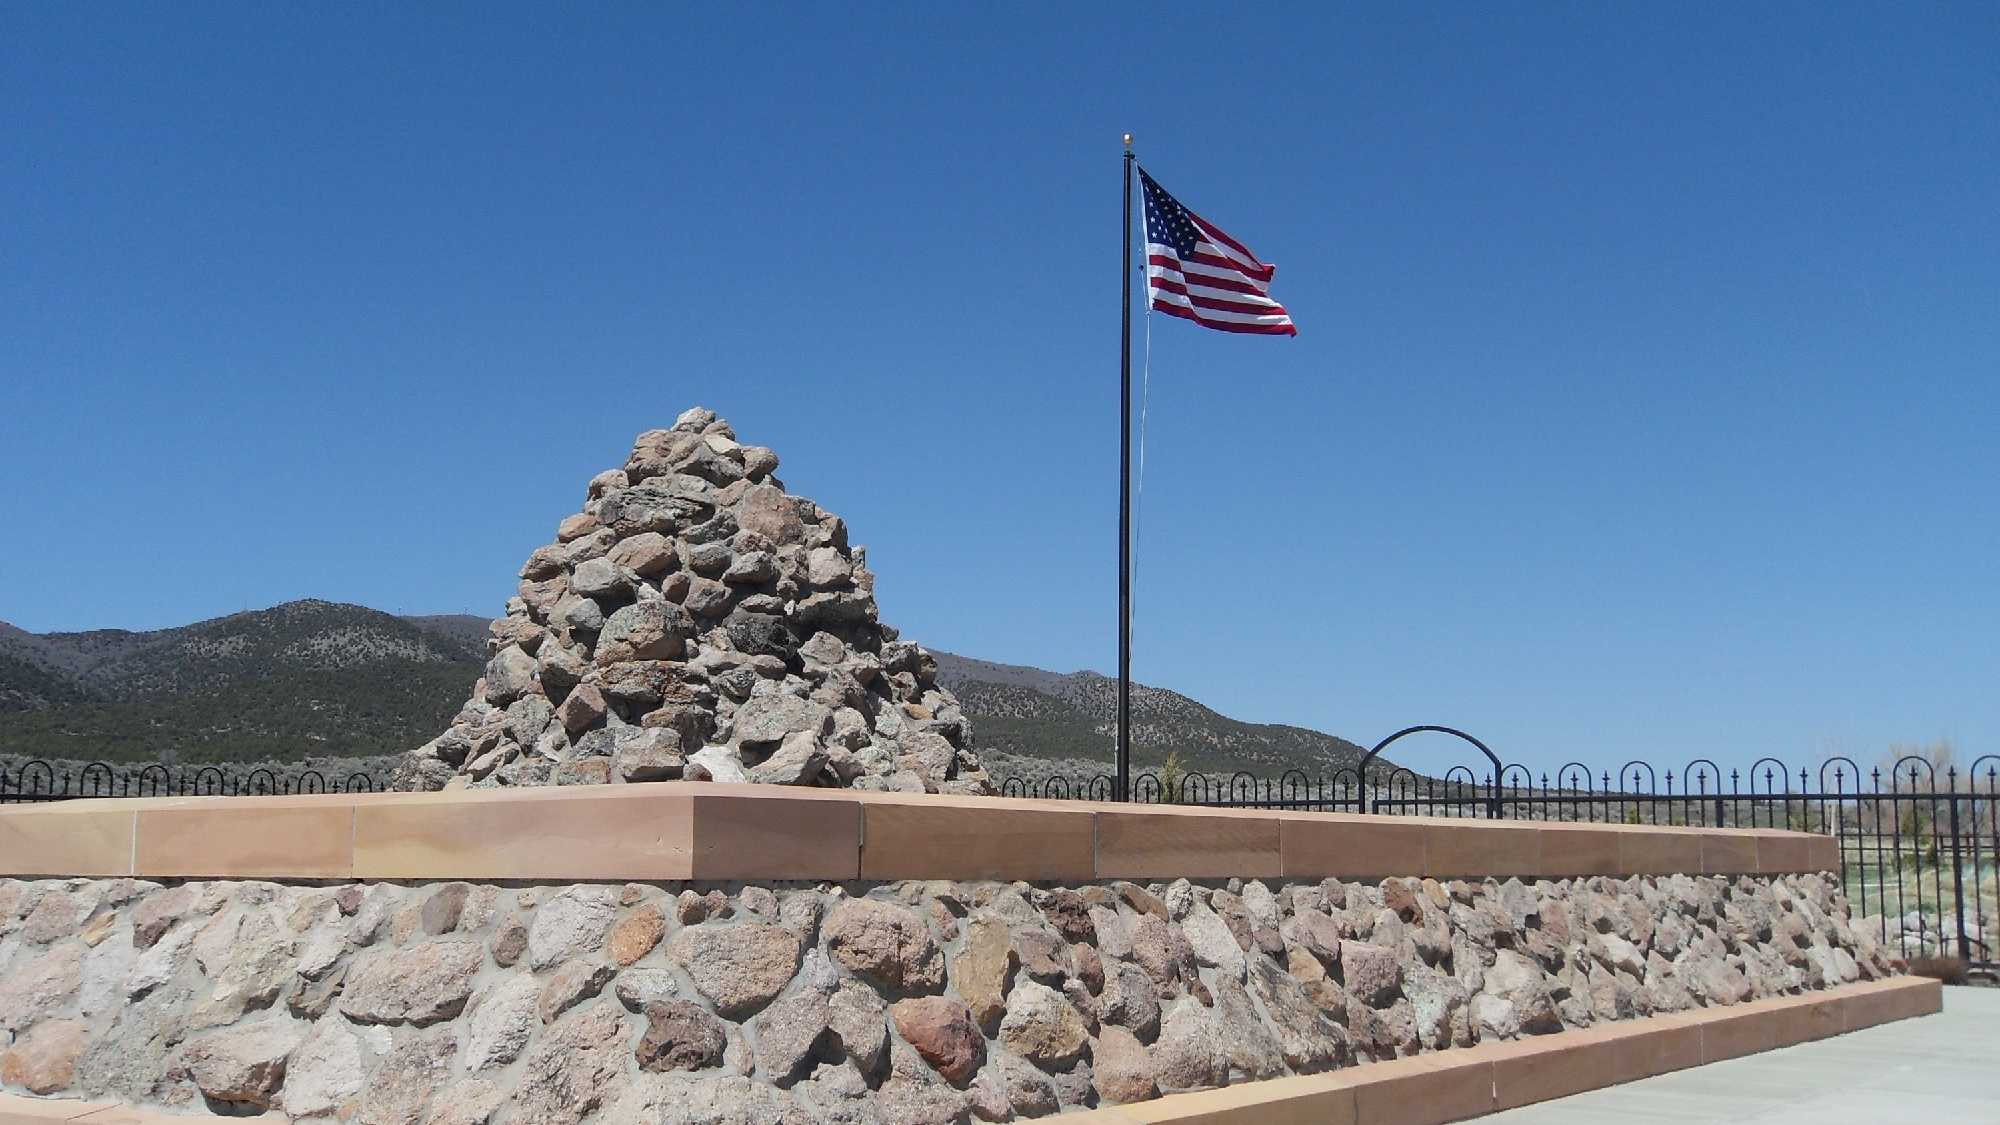 A view of the 1999 Monument and cairn replica in Mountain Meadows, Utah.